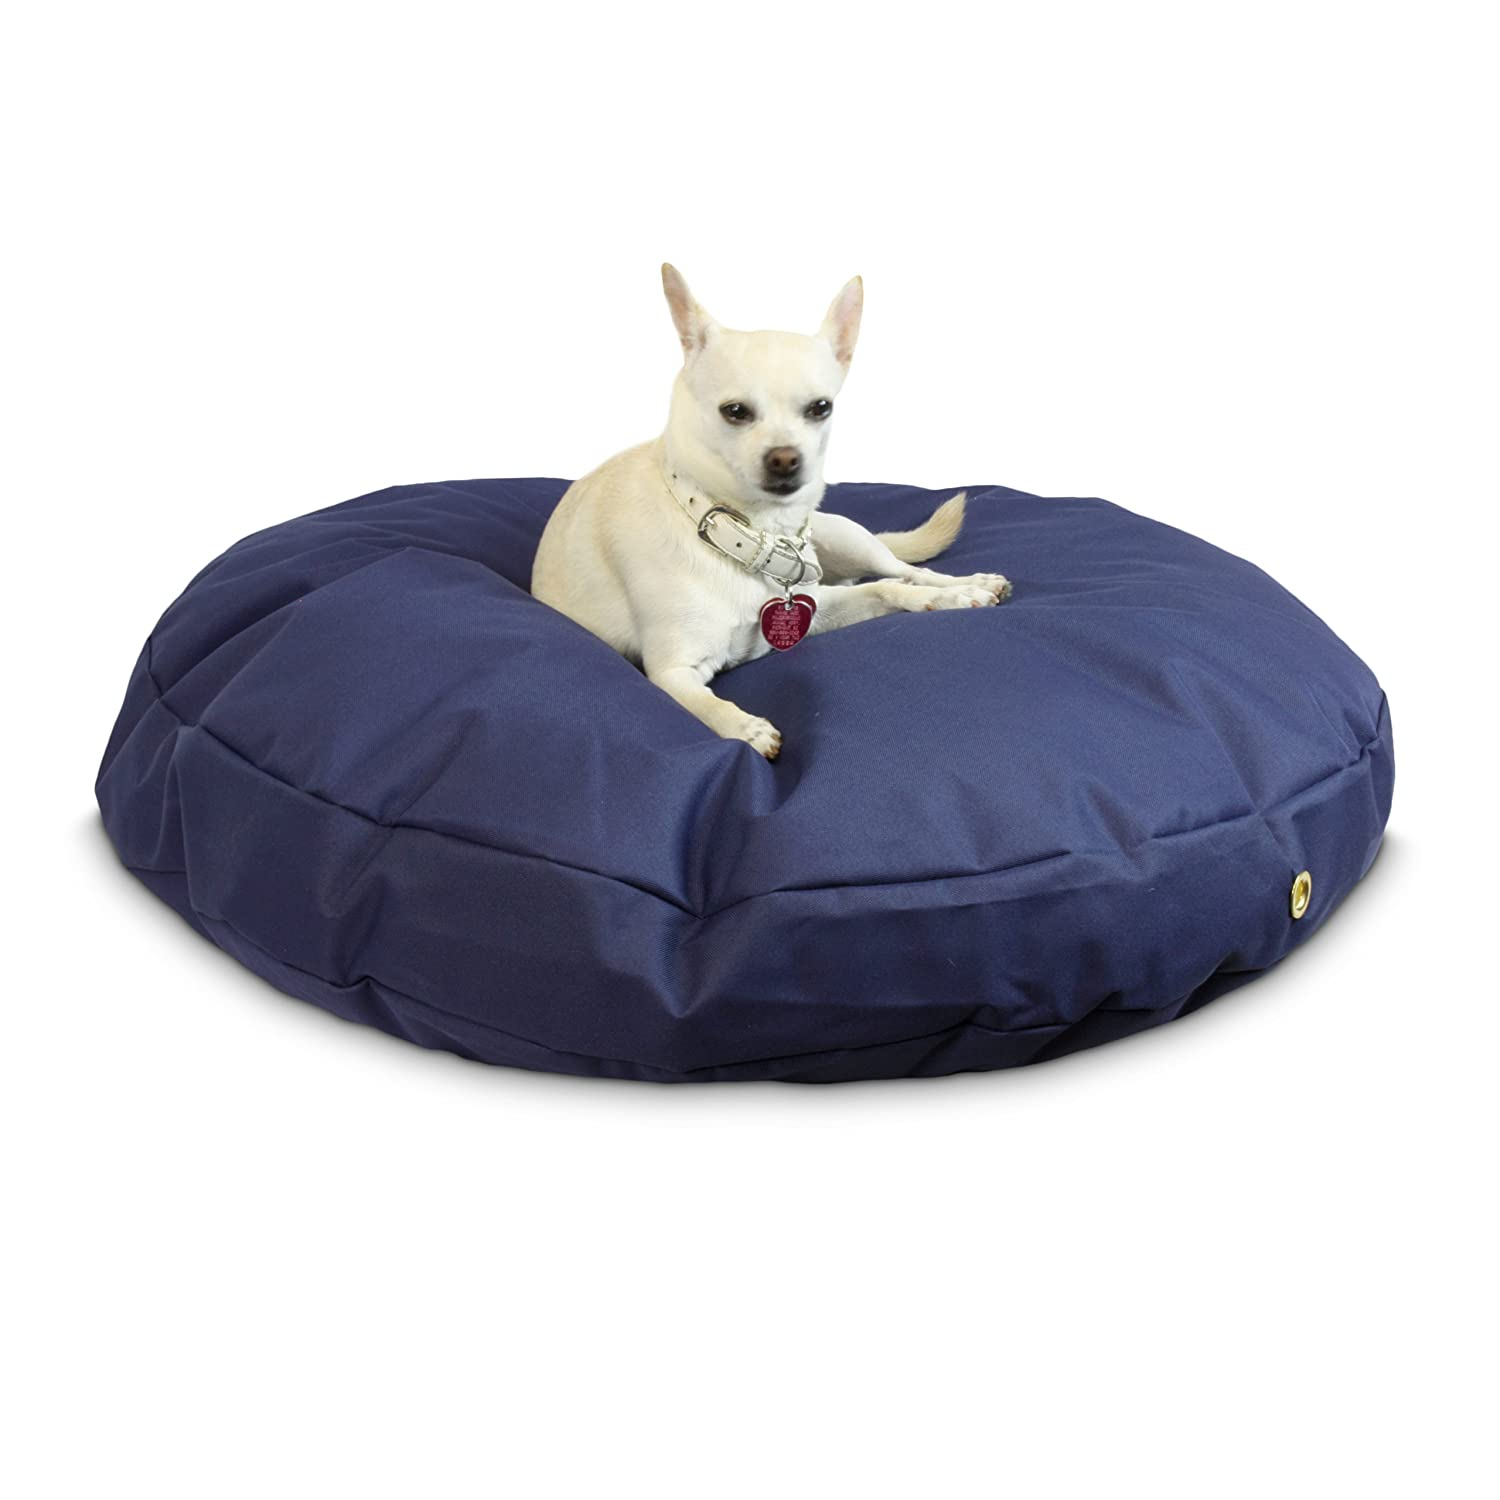 Small Snoozer 76001 Small, 36-Inch Waterproof Round Pet Bed, Navy